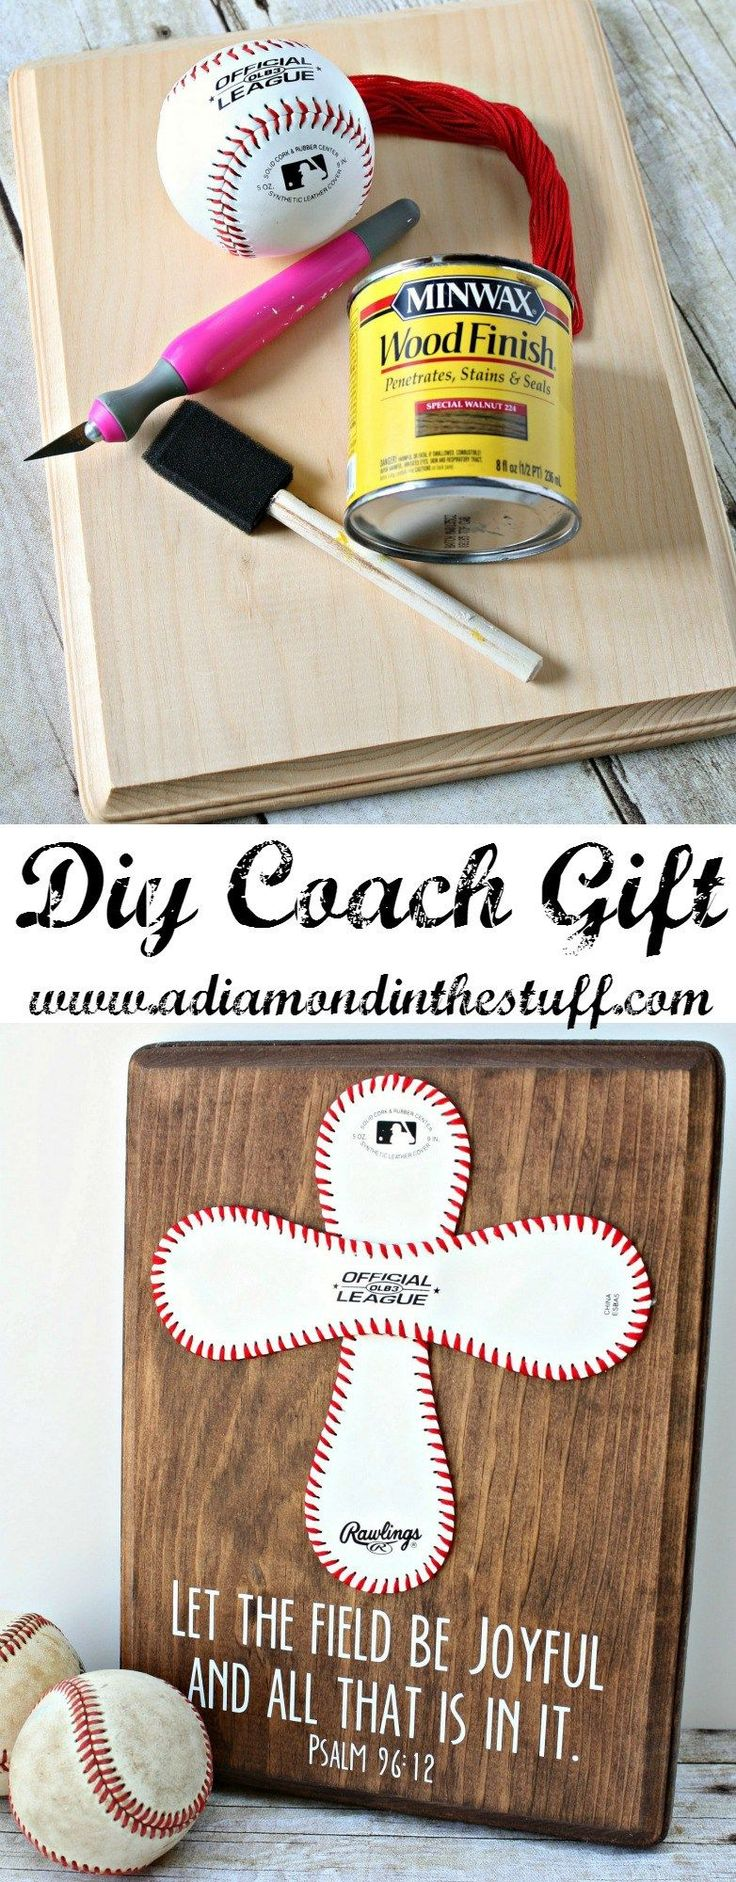 best 25 baseball wall ideas only on pinterest boys baseball big green poster board cut into shape of a baseball field with the theme verse